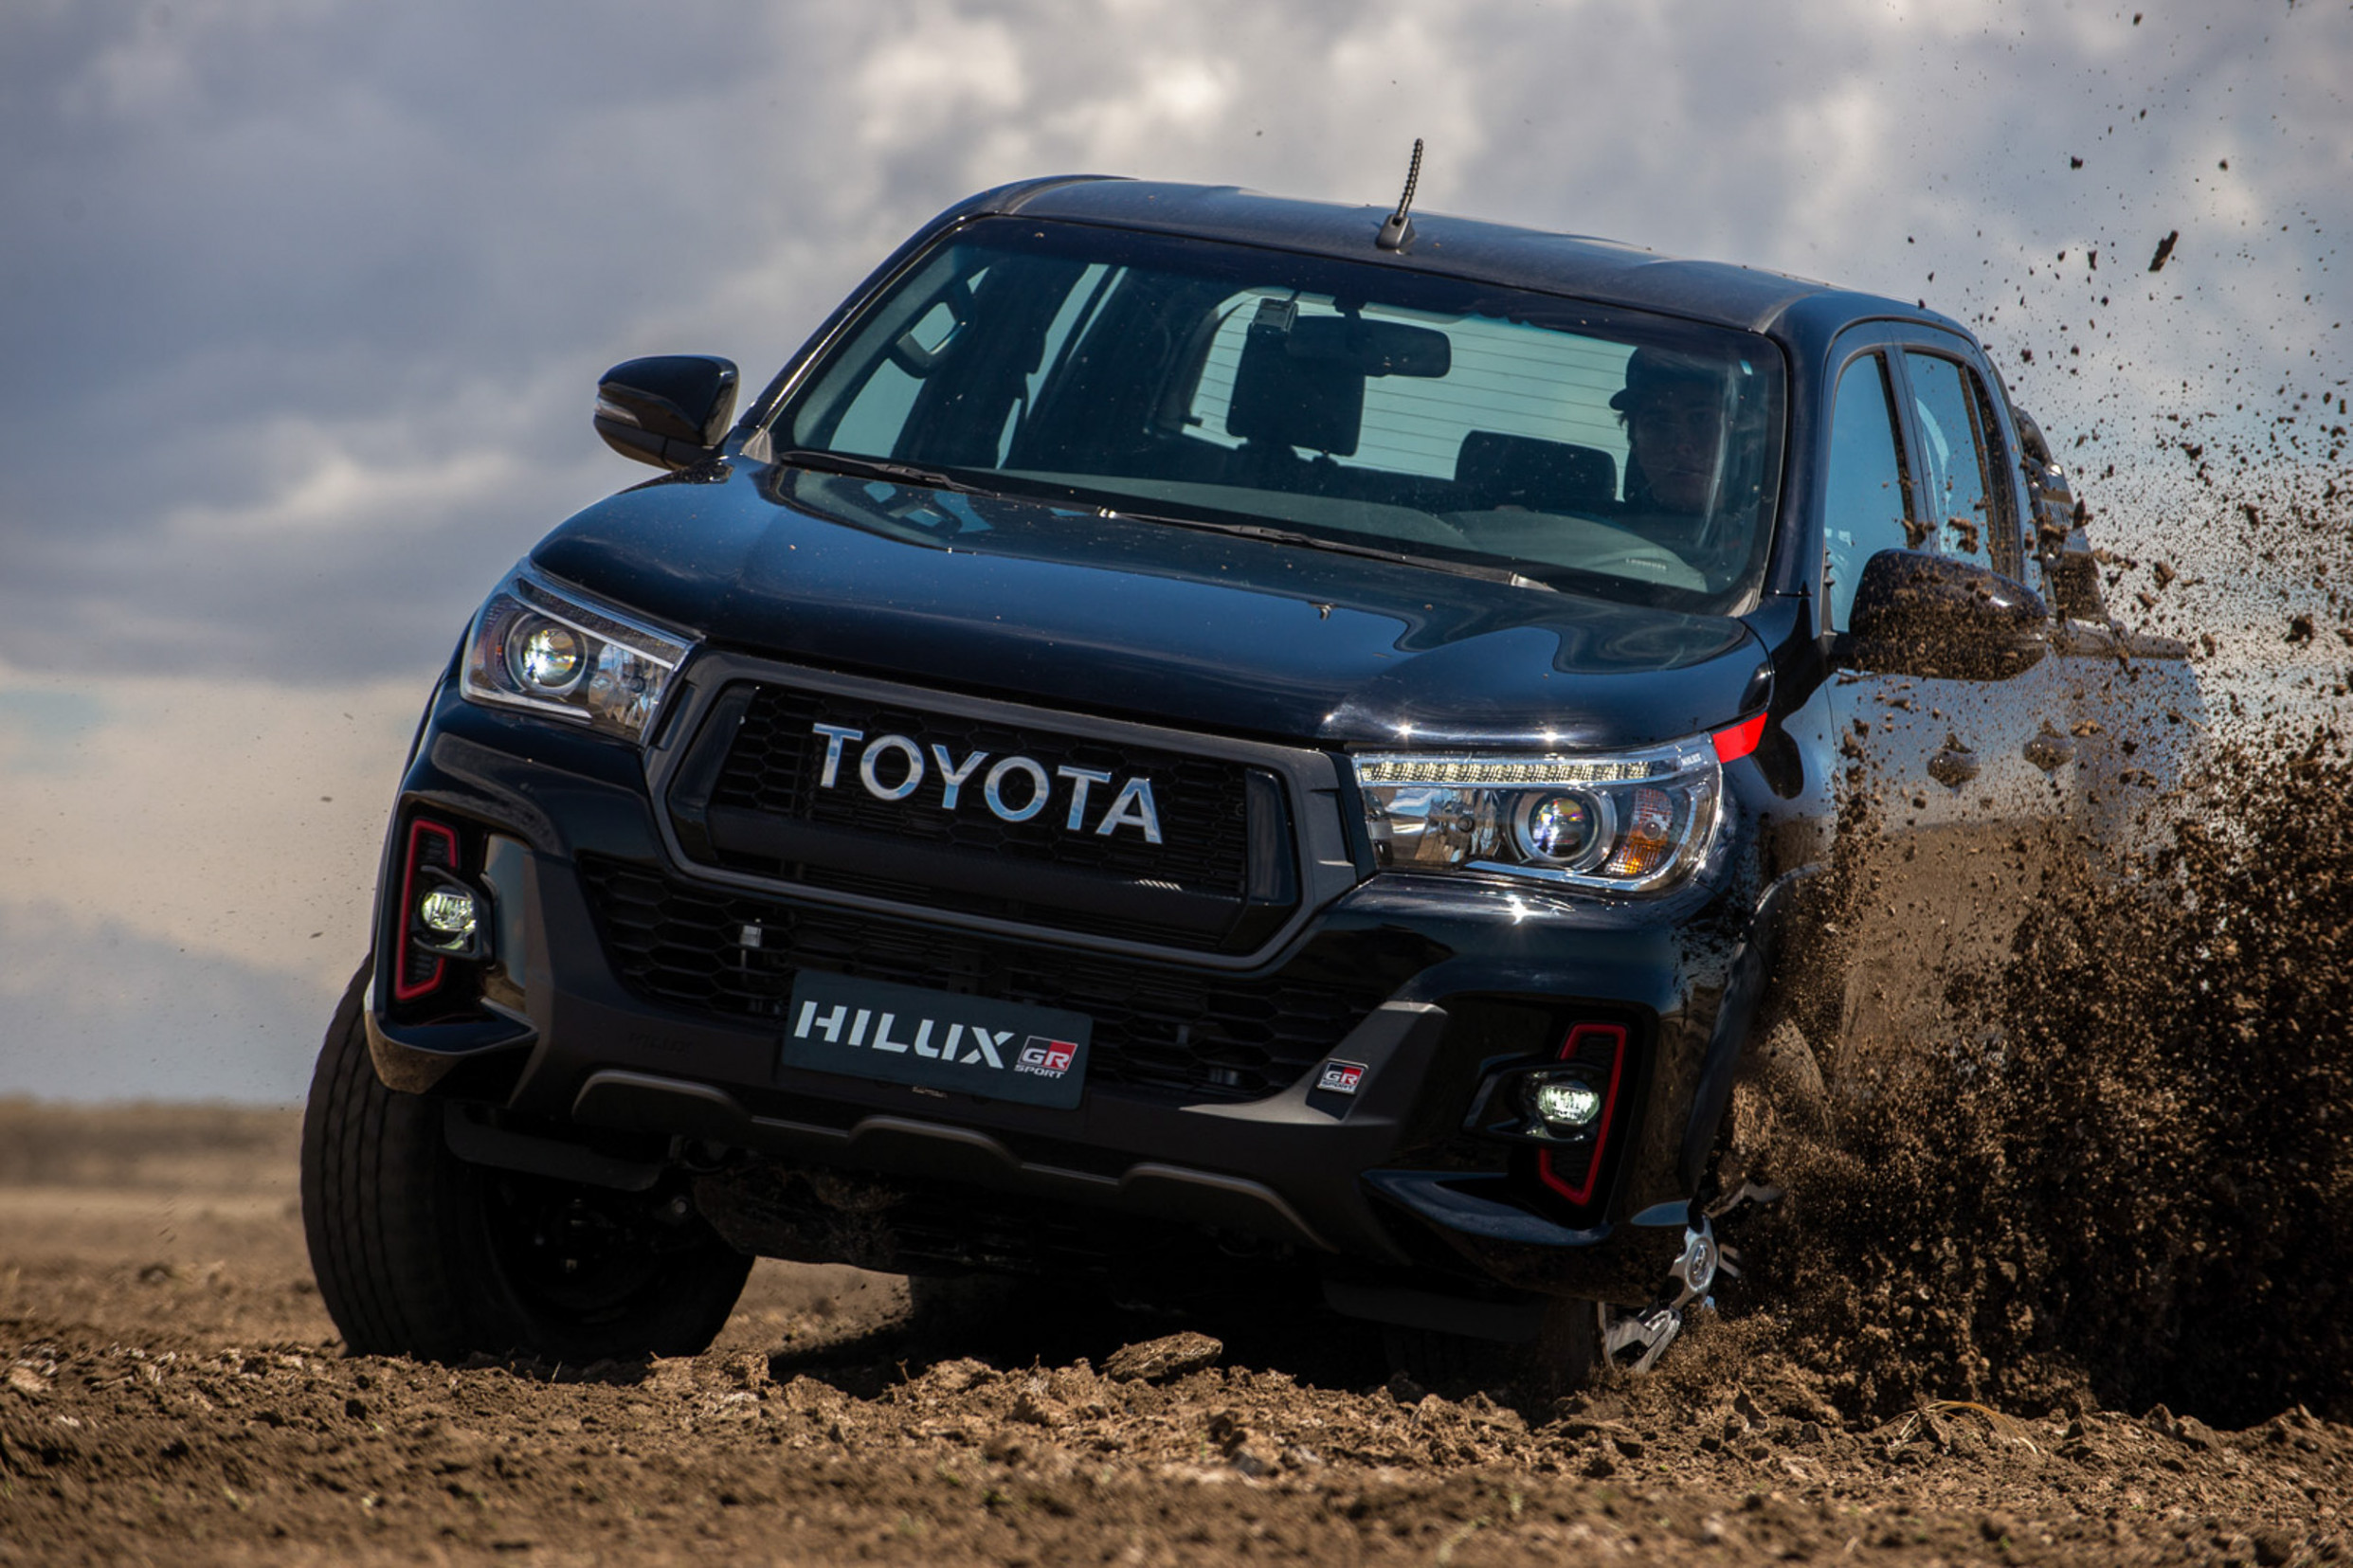 6 Toyota Hilux GR Sport swaps diesel for gasoline V6 - Auto News - toyota hilux 2020 price philippines